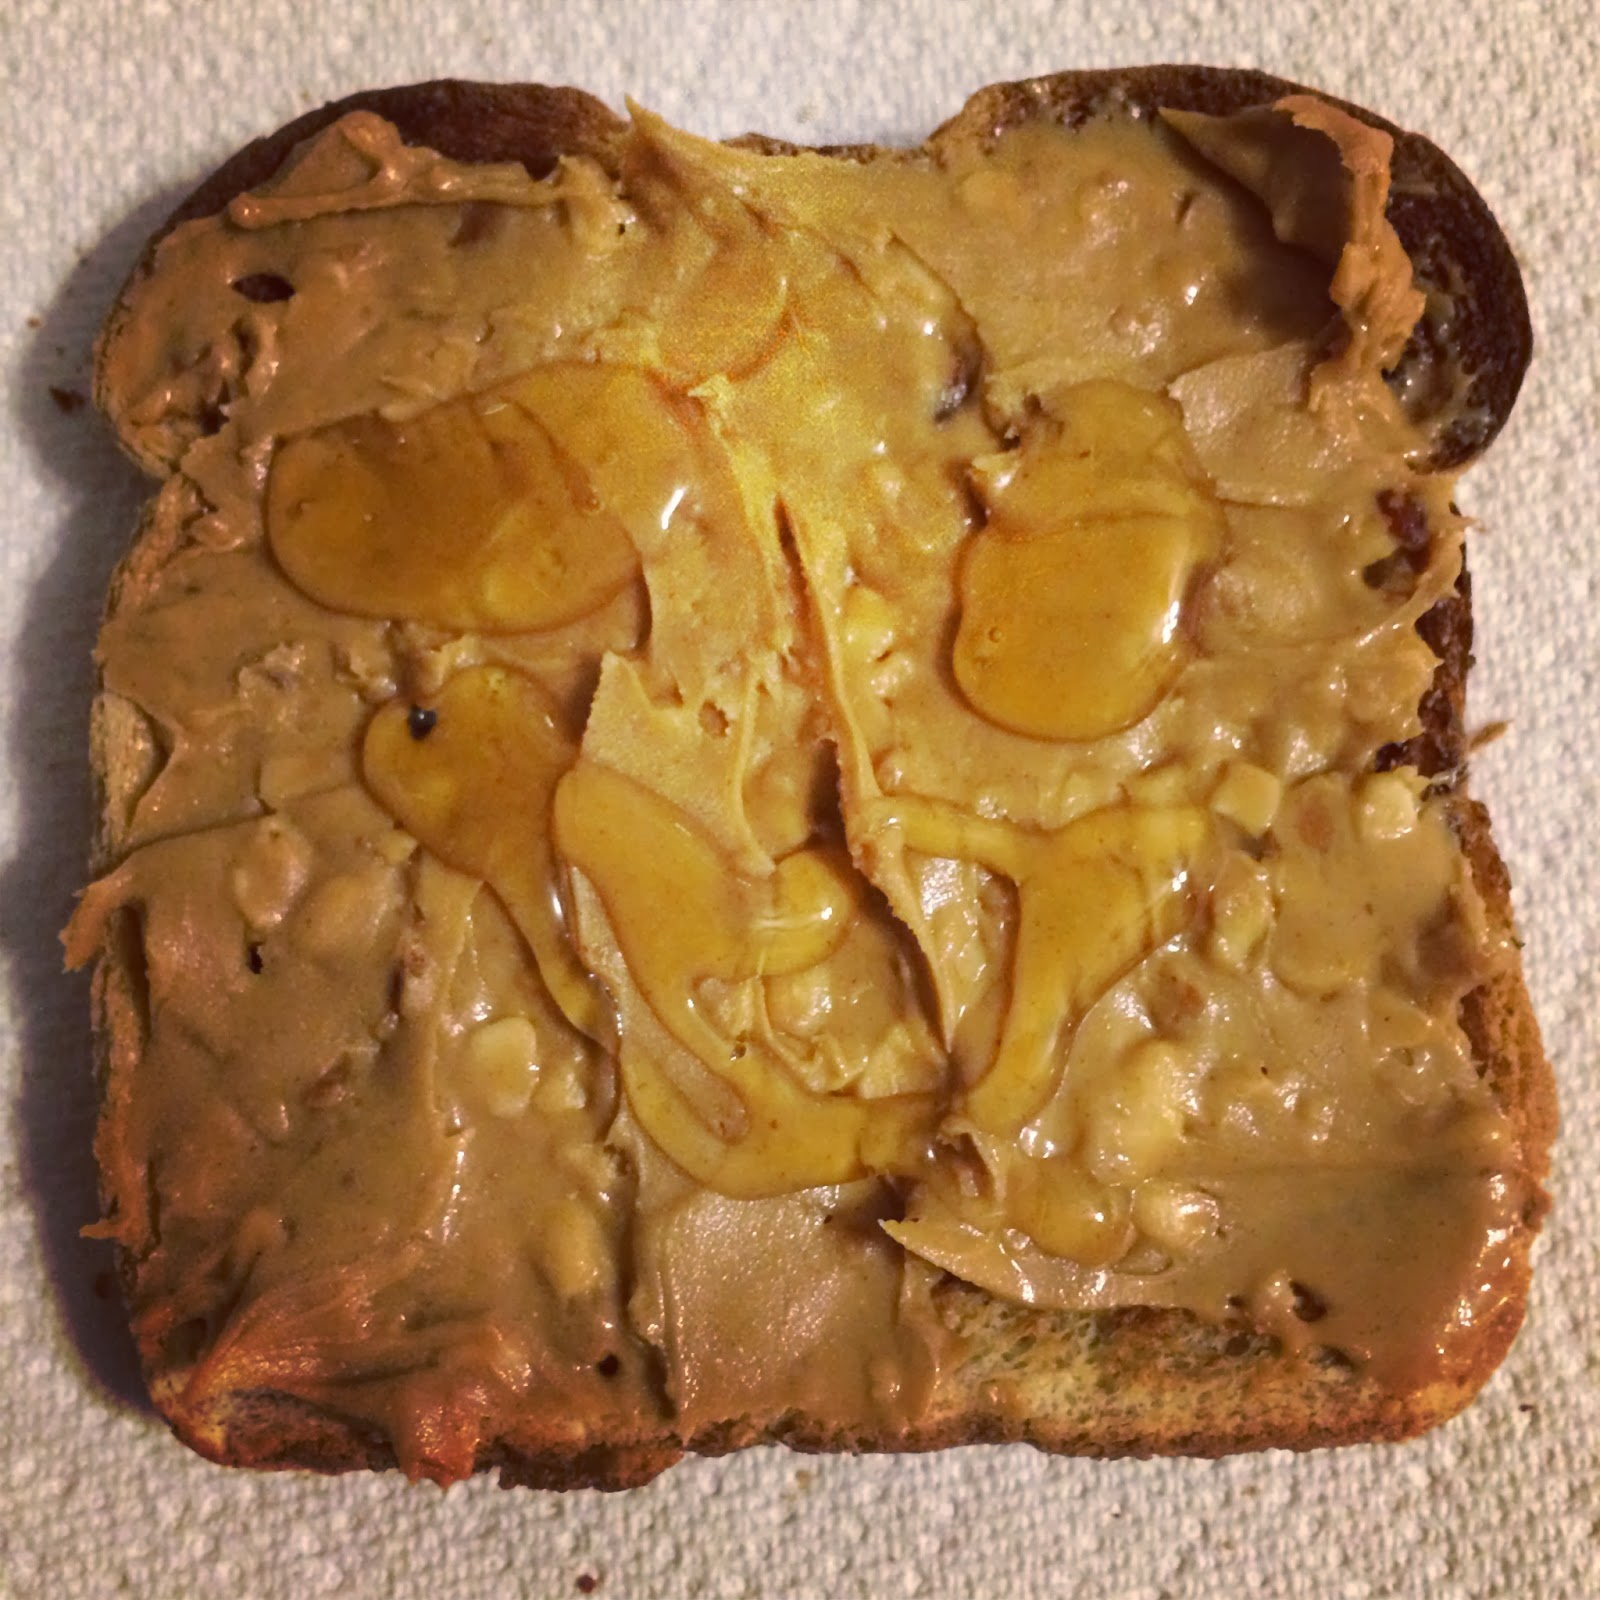 Little Cook in the Big City: Peanut Butter and Honey Toast